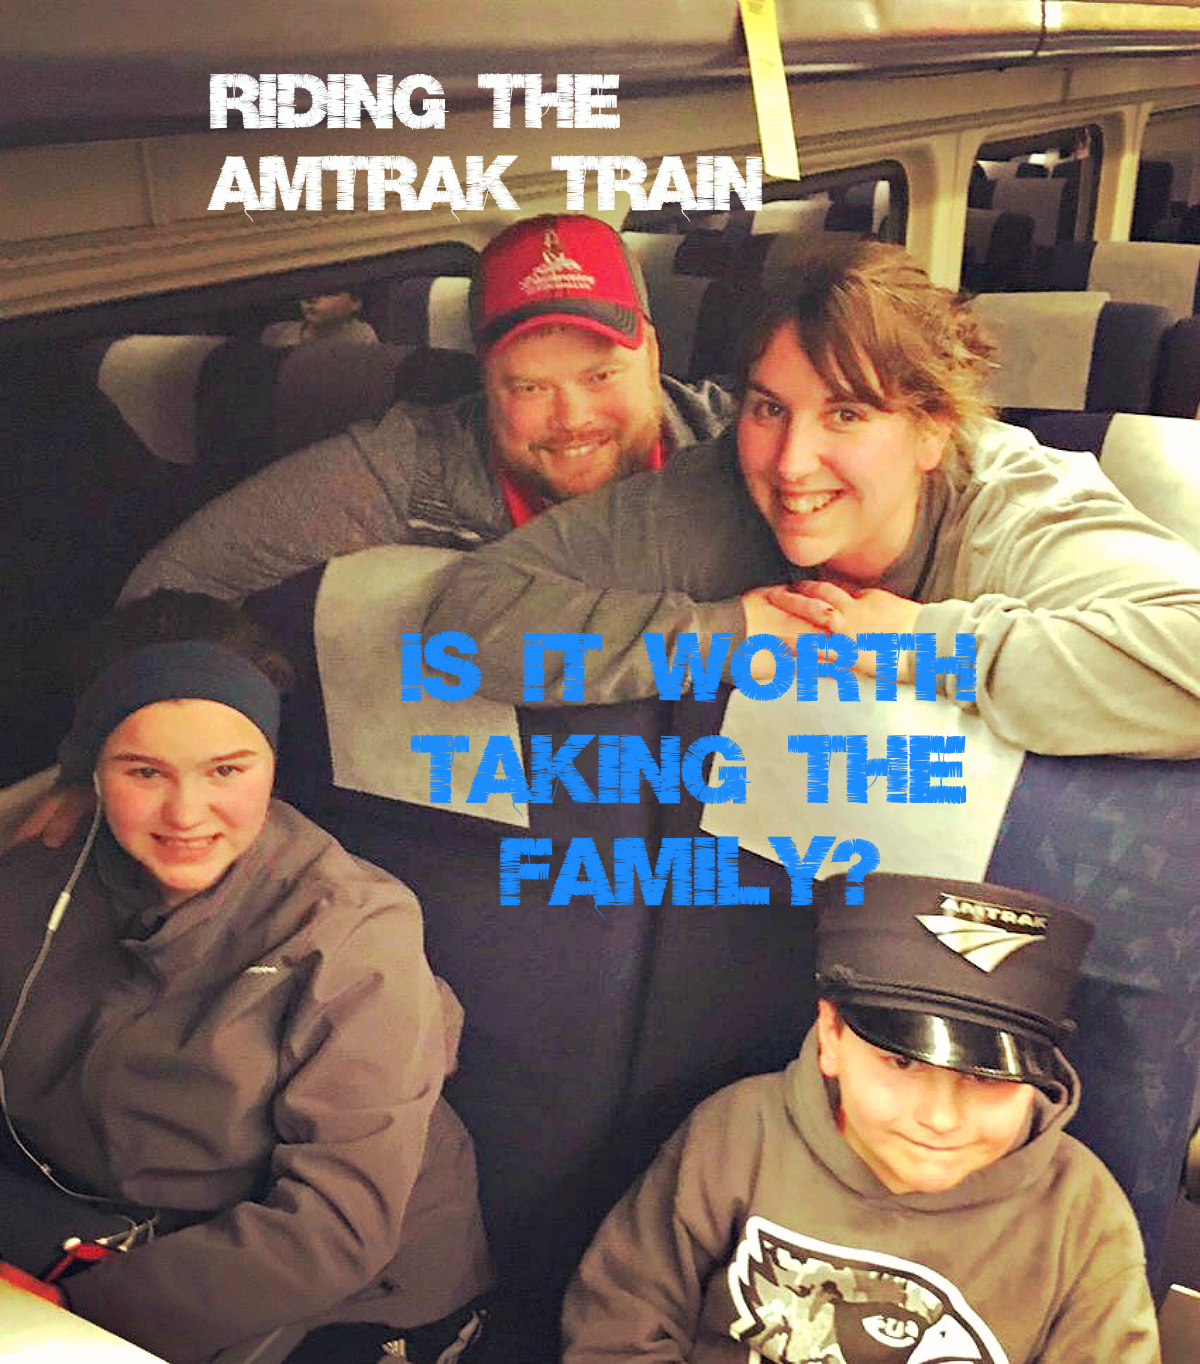 Riding the Amtrak Train - Taking the Family